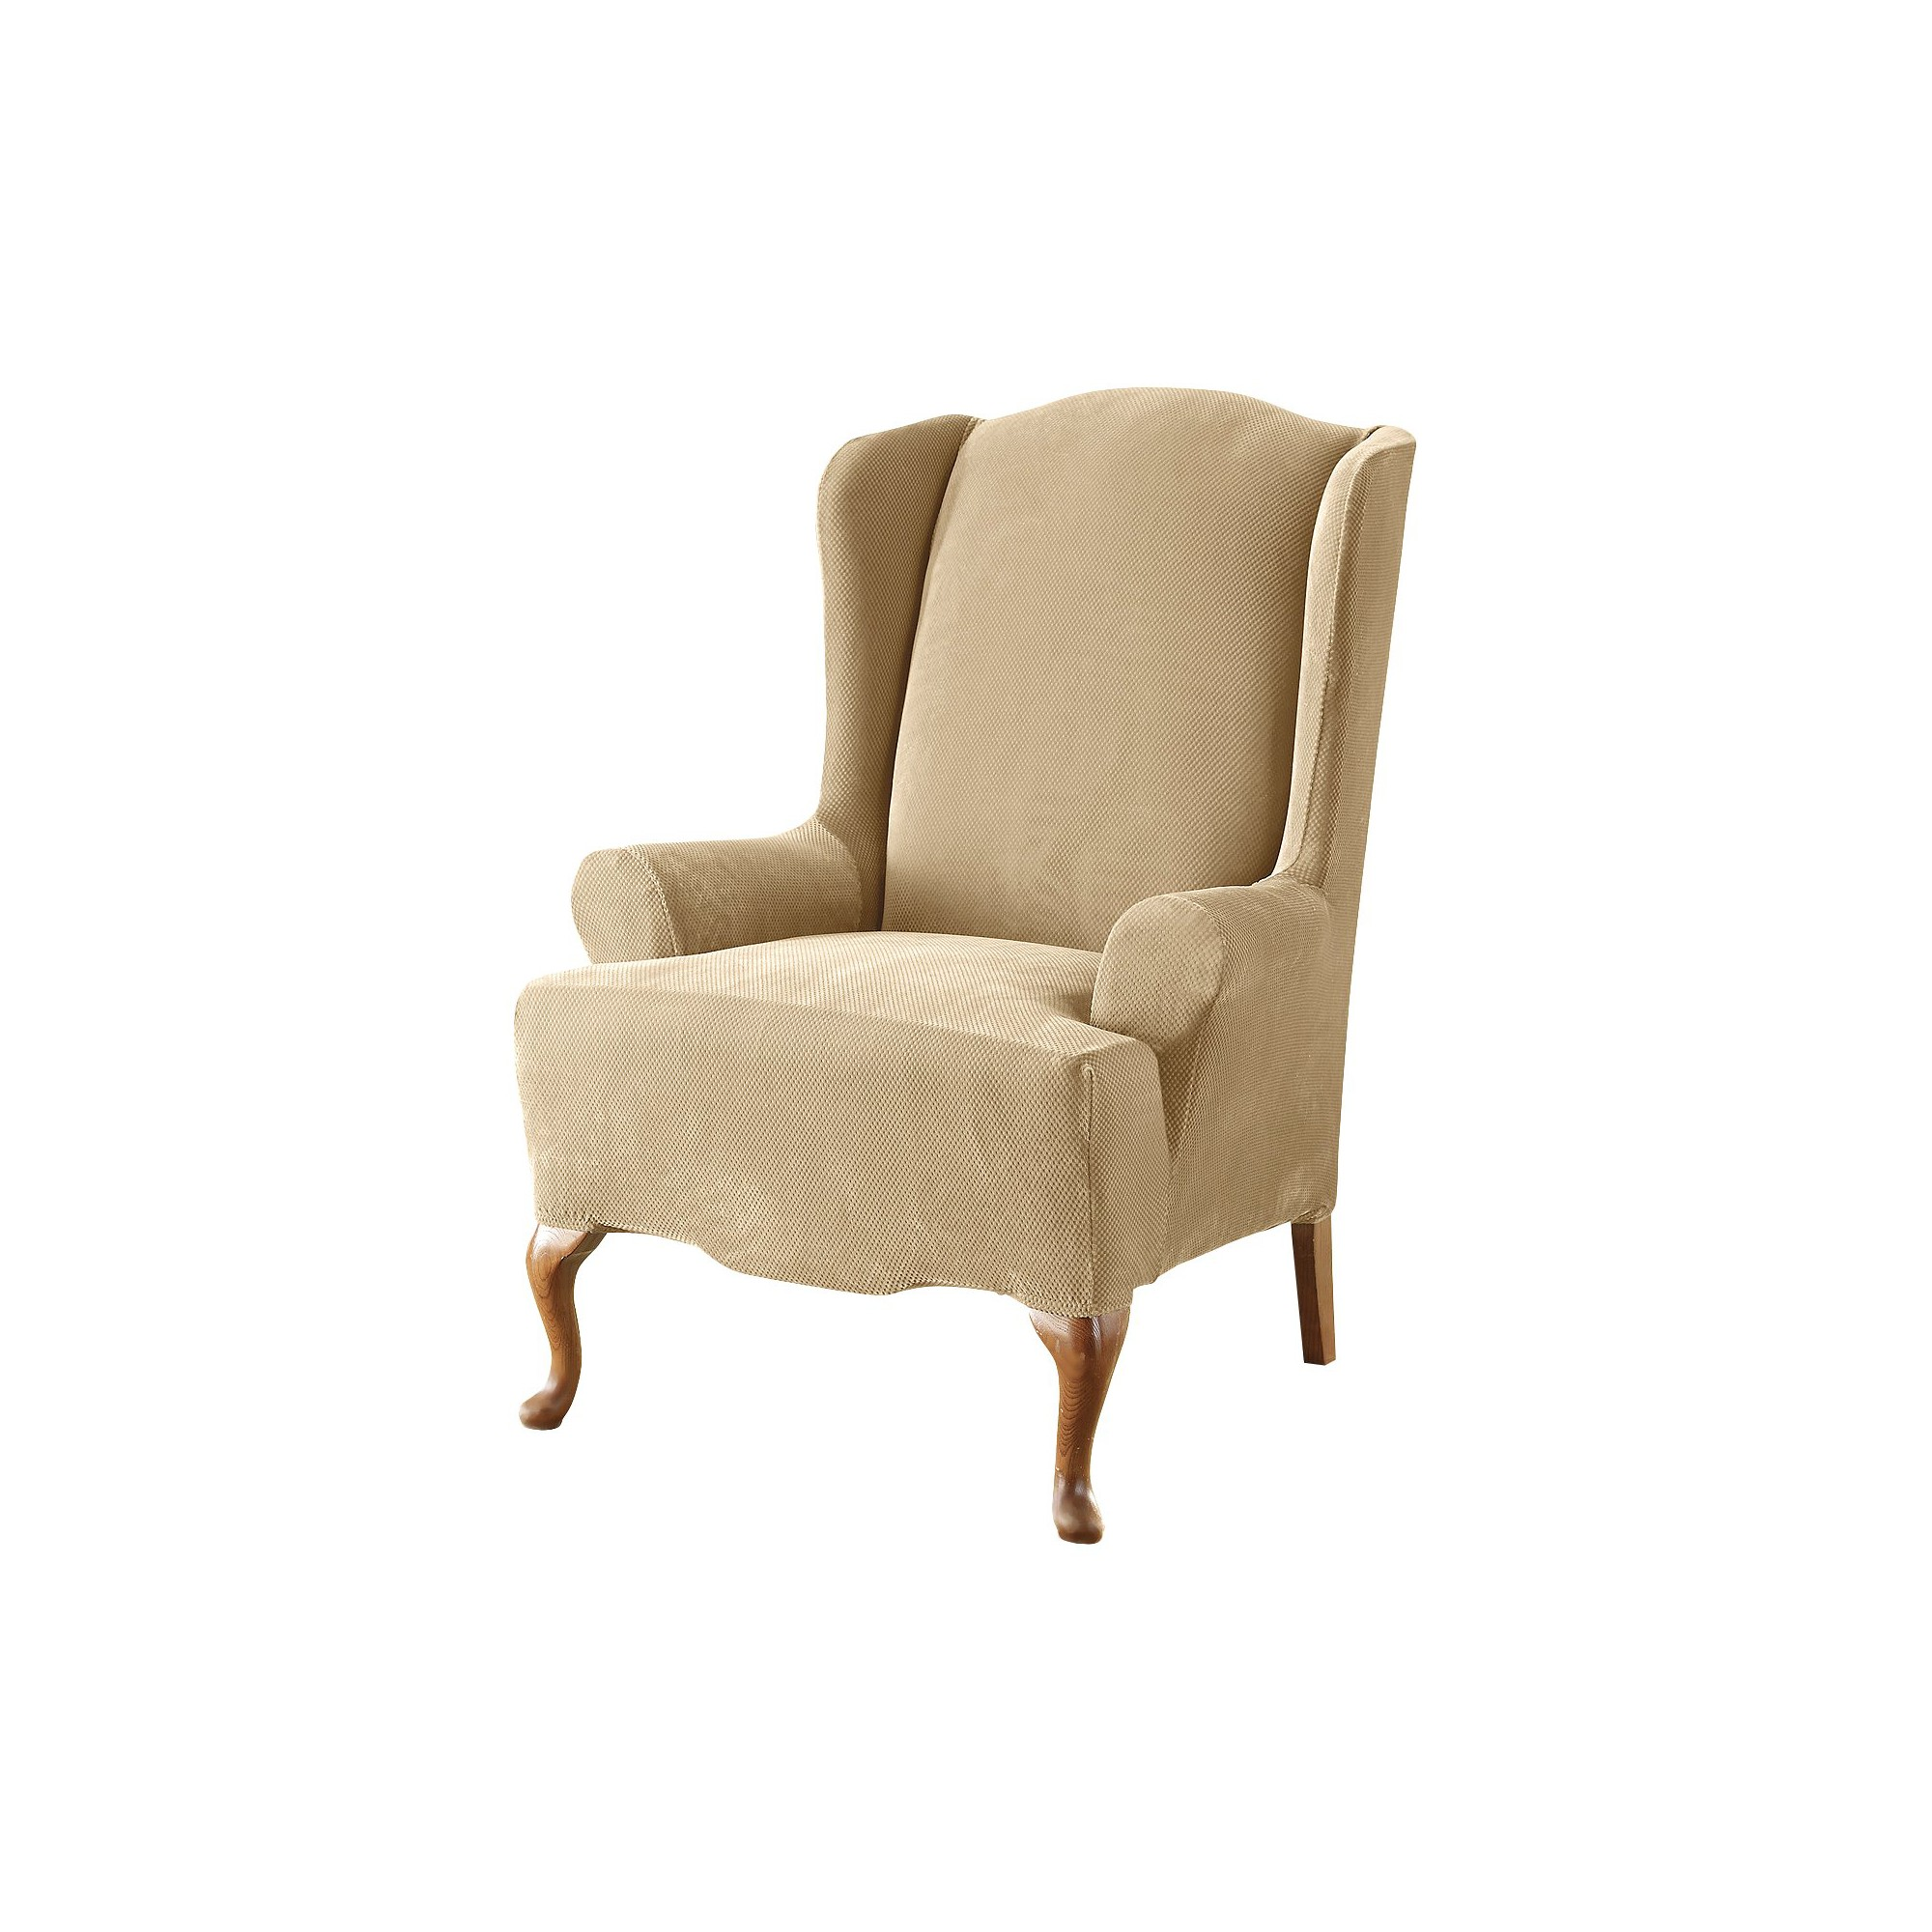 Cream Stretch Pique Slipcover Cream Wing Chair - Sure Fit, Ivory